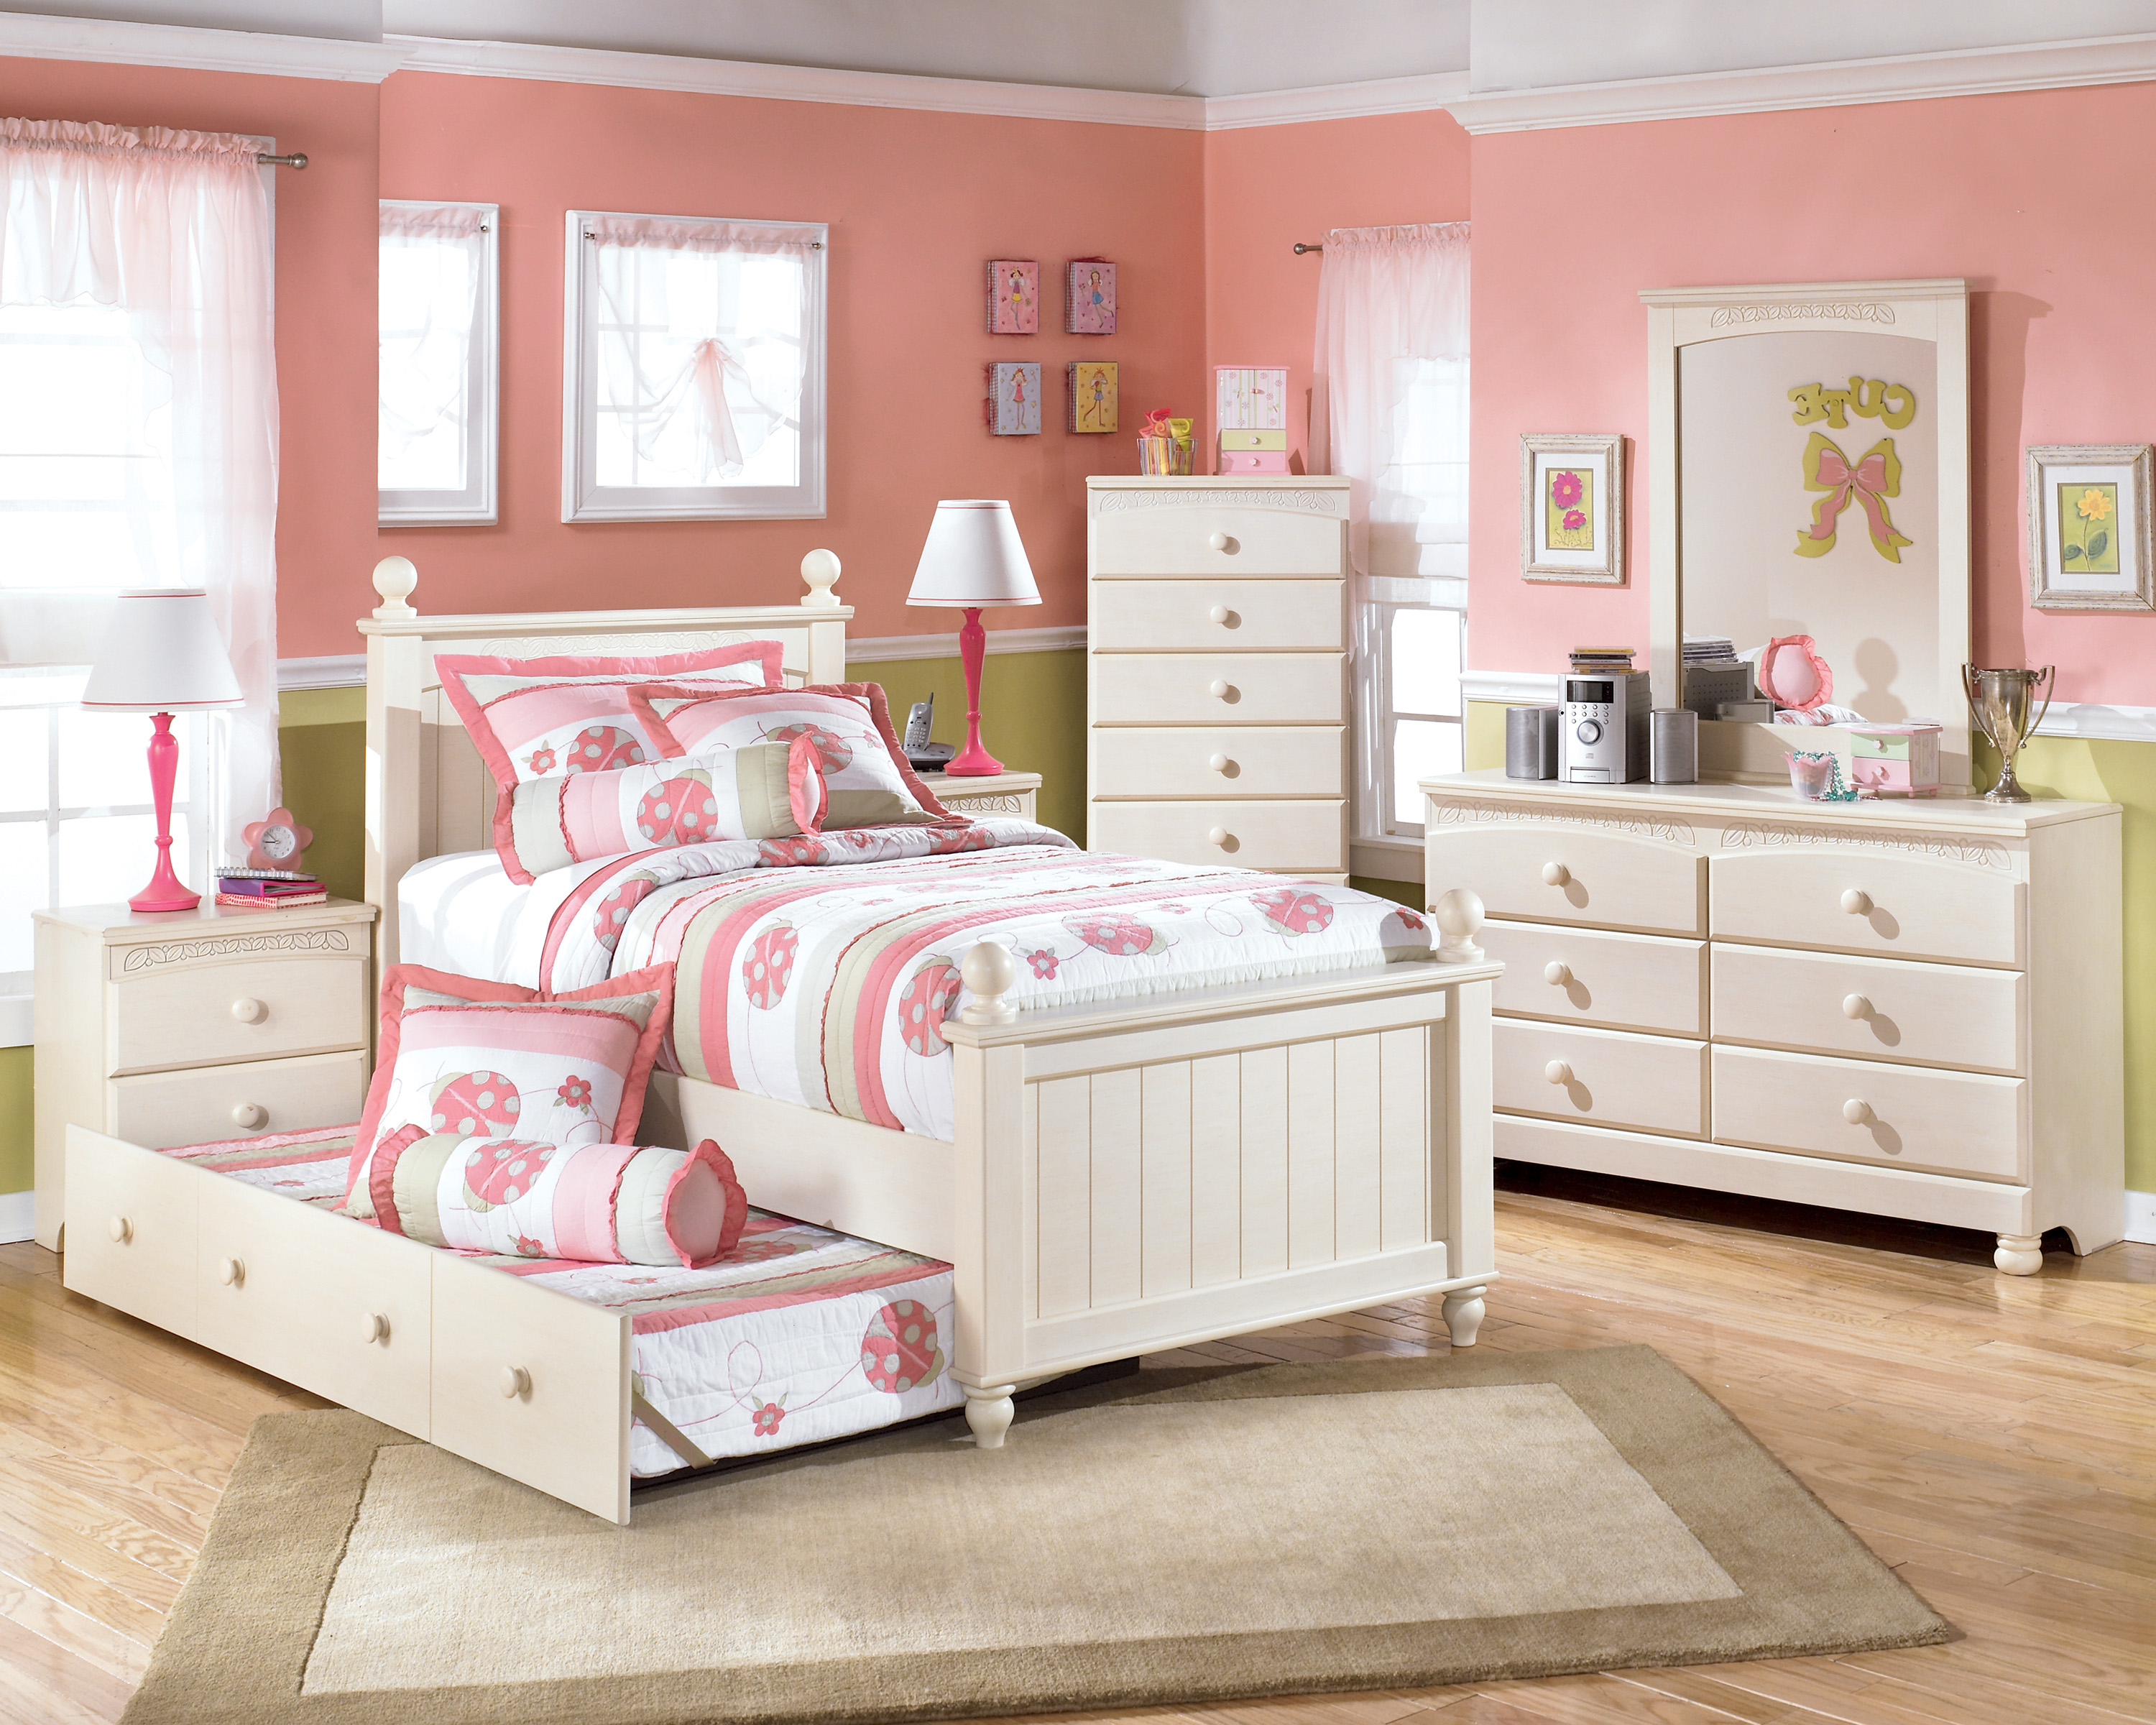 Master ... Kids Bedroom Furniture Sets For Boys With Blue Themes Room Furniture white childrens bedroom furniture